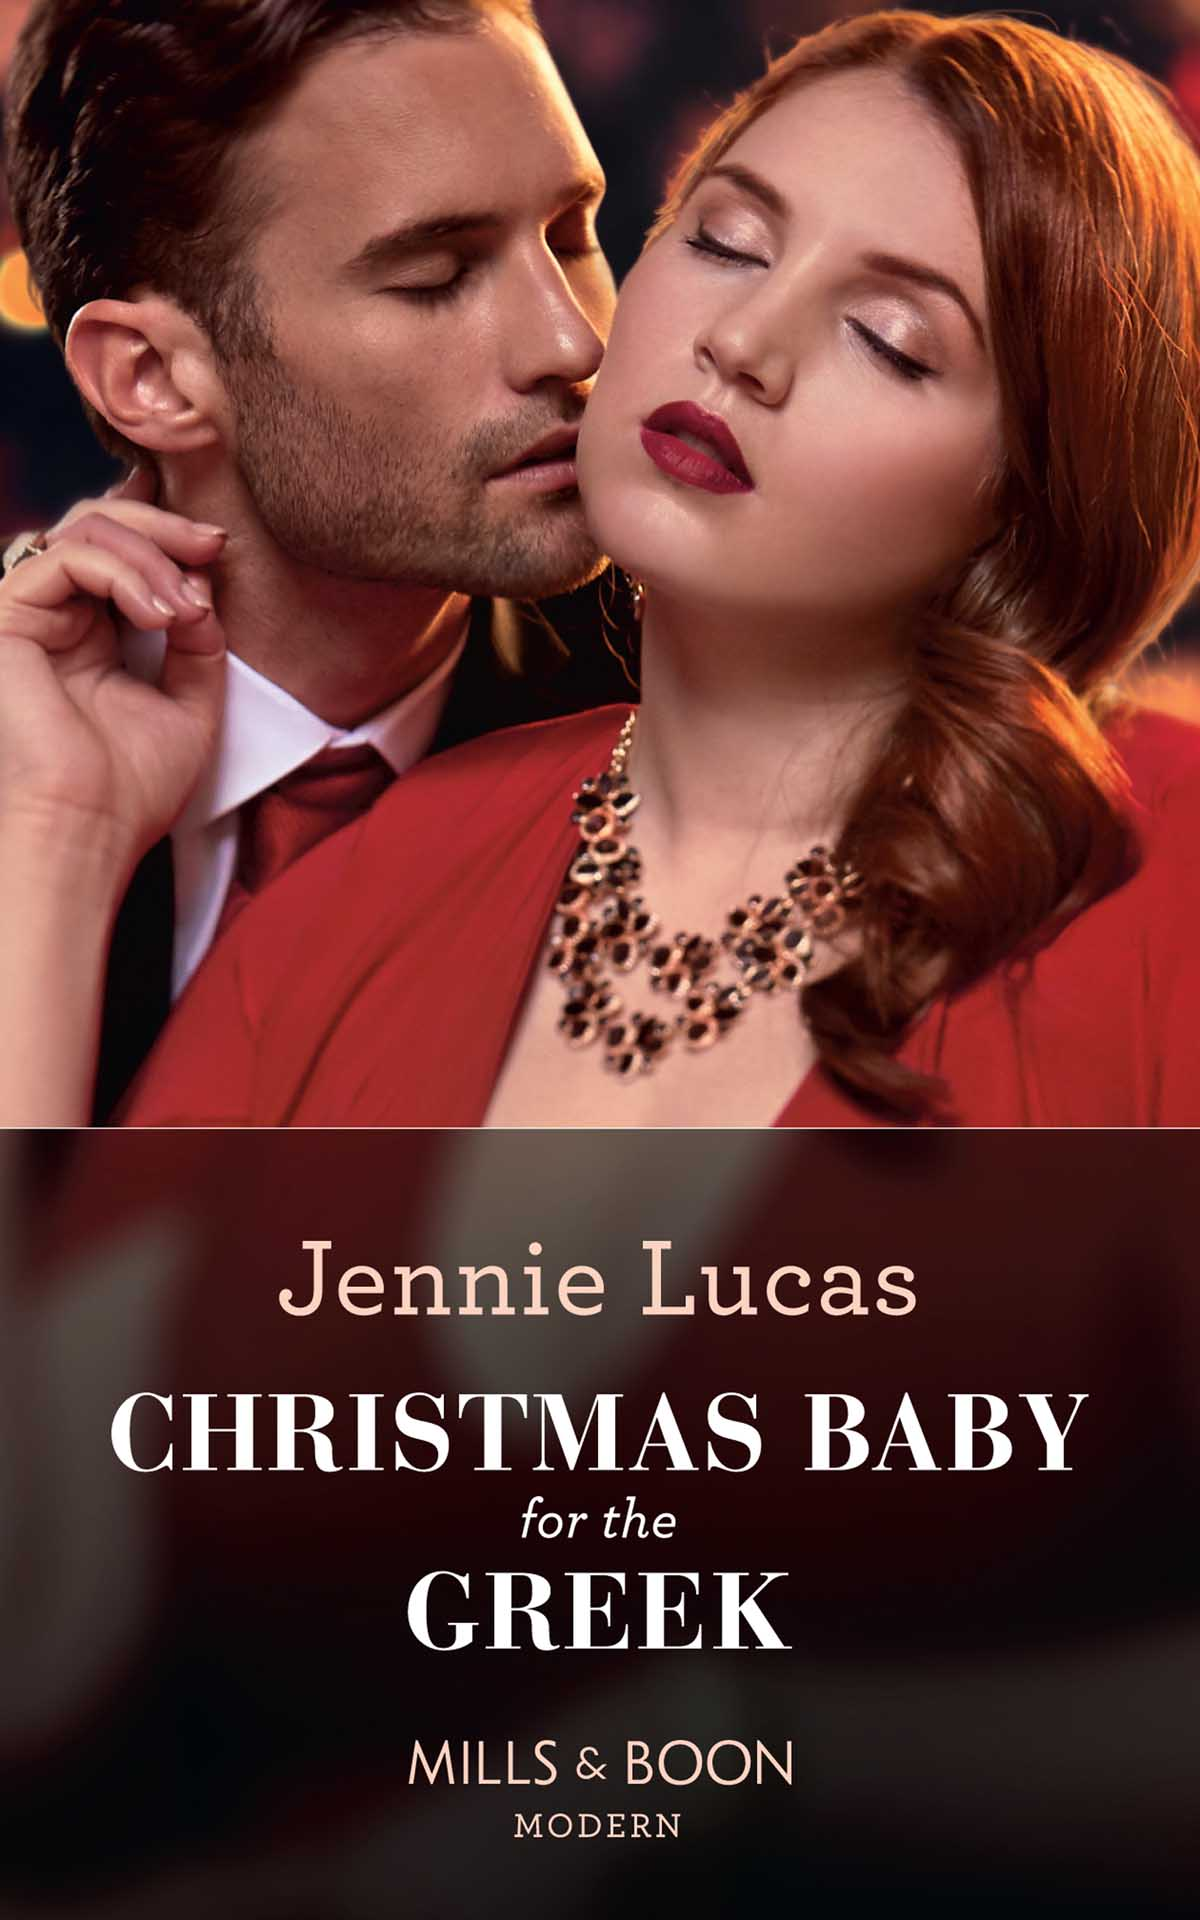 JENNIE LUCAS Christmas Baby For The Greek brenda markstein if these clothes could talk an emotional striptease